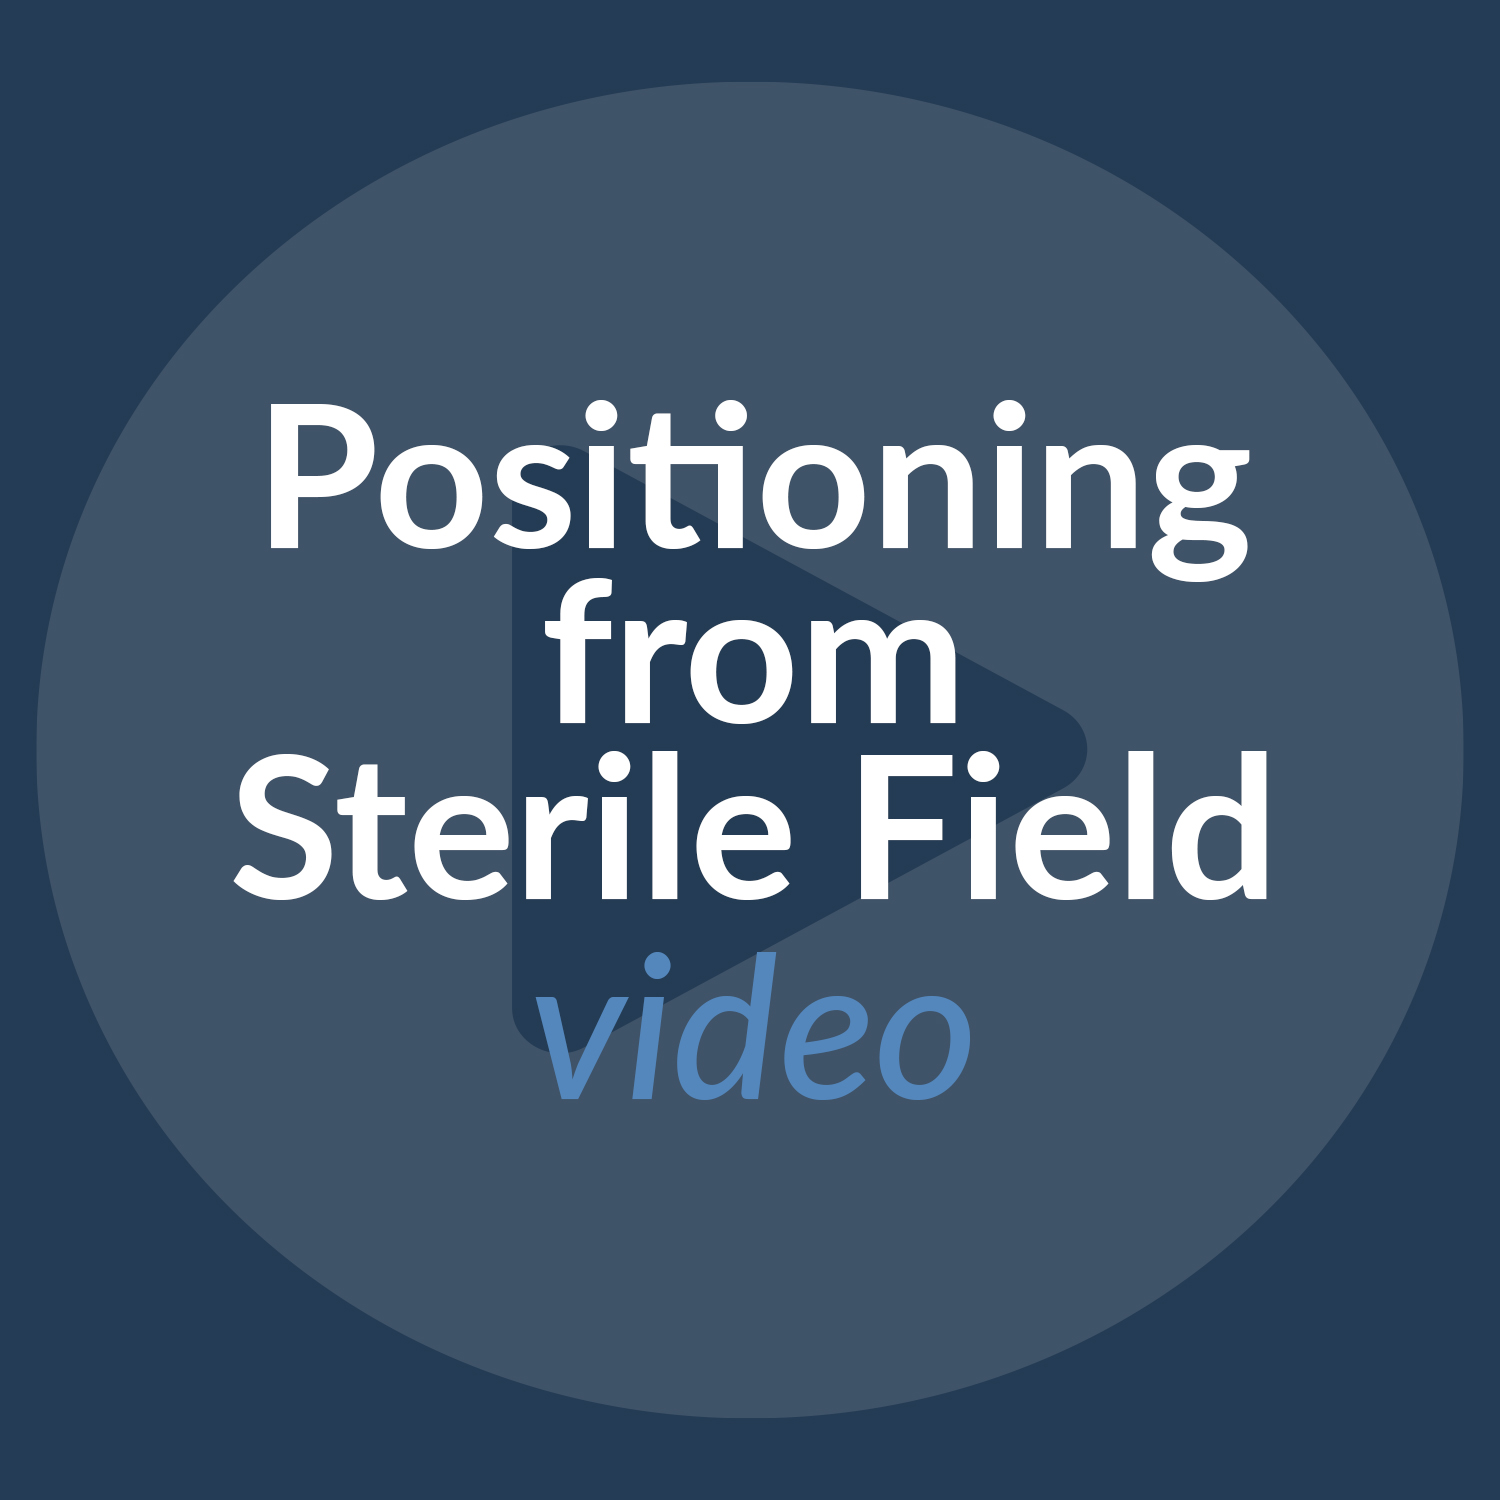 Cios Spin Positioning from Sterile Field